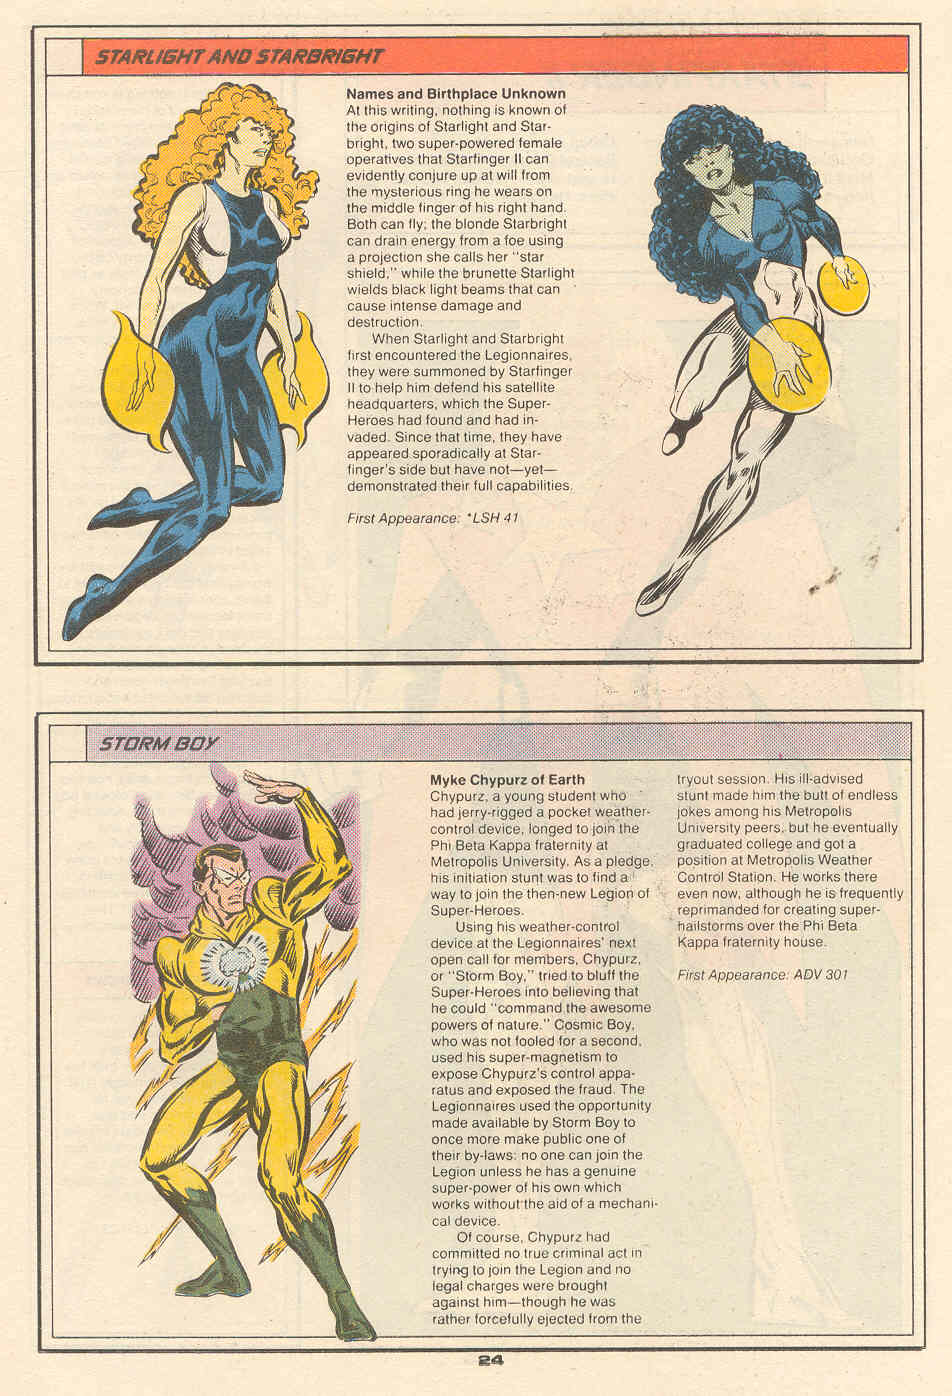 Starlight, Starbright and Storm Boy by Frank Travellin and Mike DeCarlo - Who's Who in the Legion of Super-Heroes #6